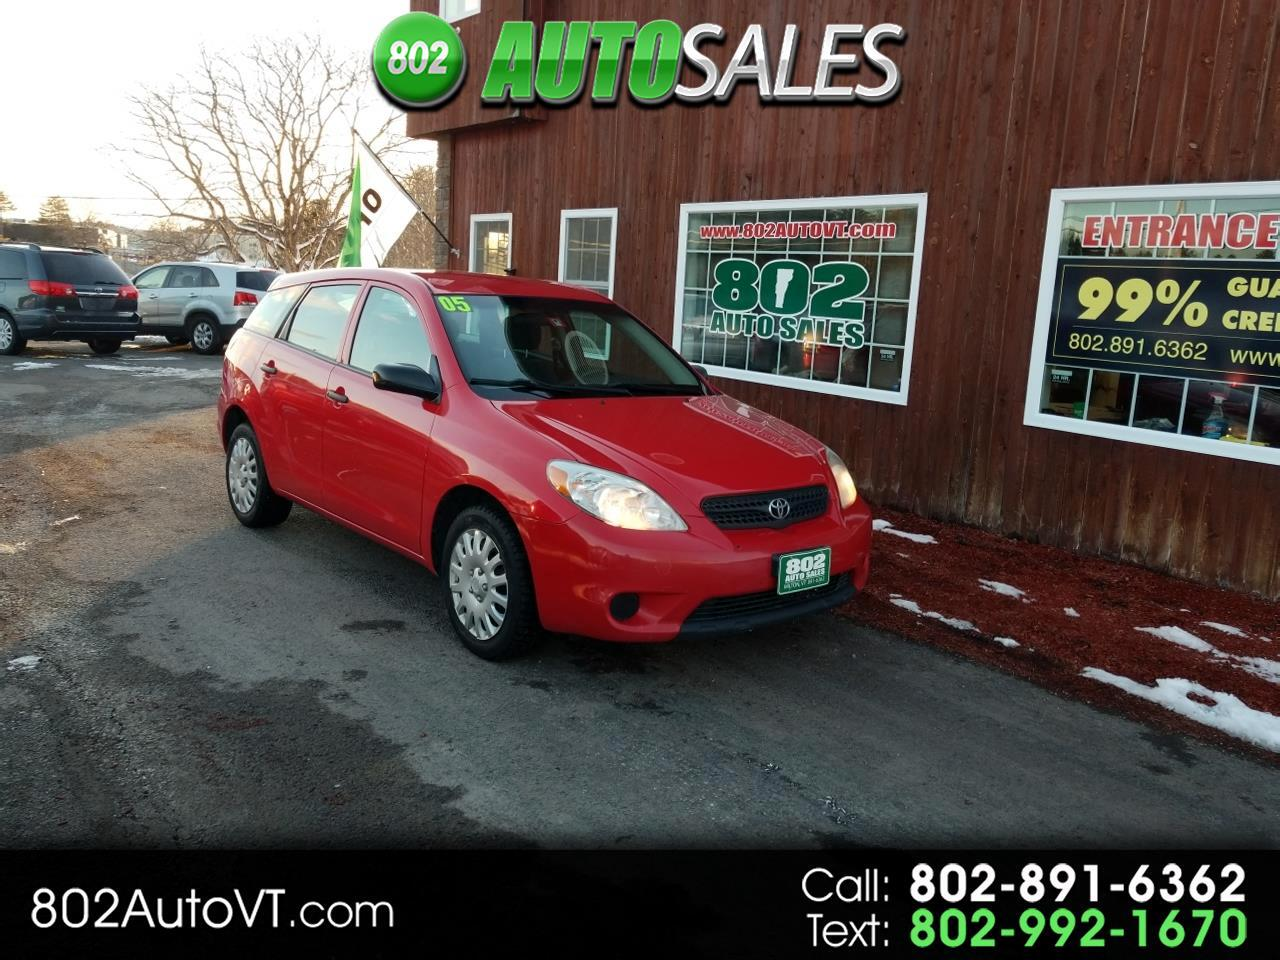 2005 Toyota Matrix 5dr Wgn STD Auto (Natl)